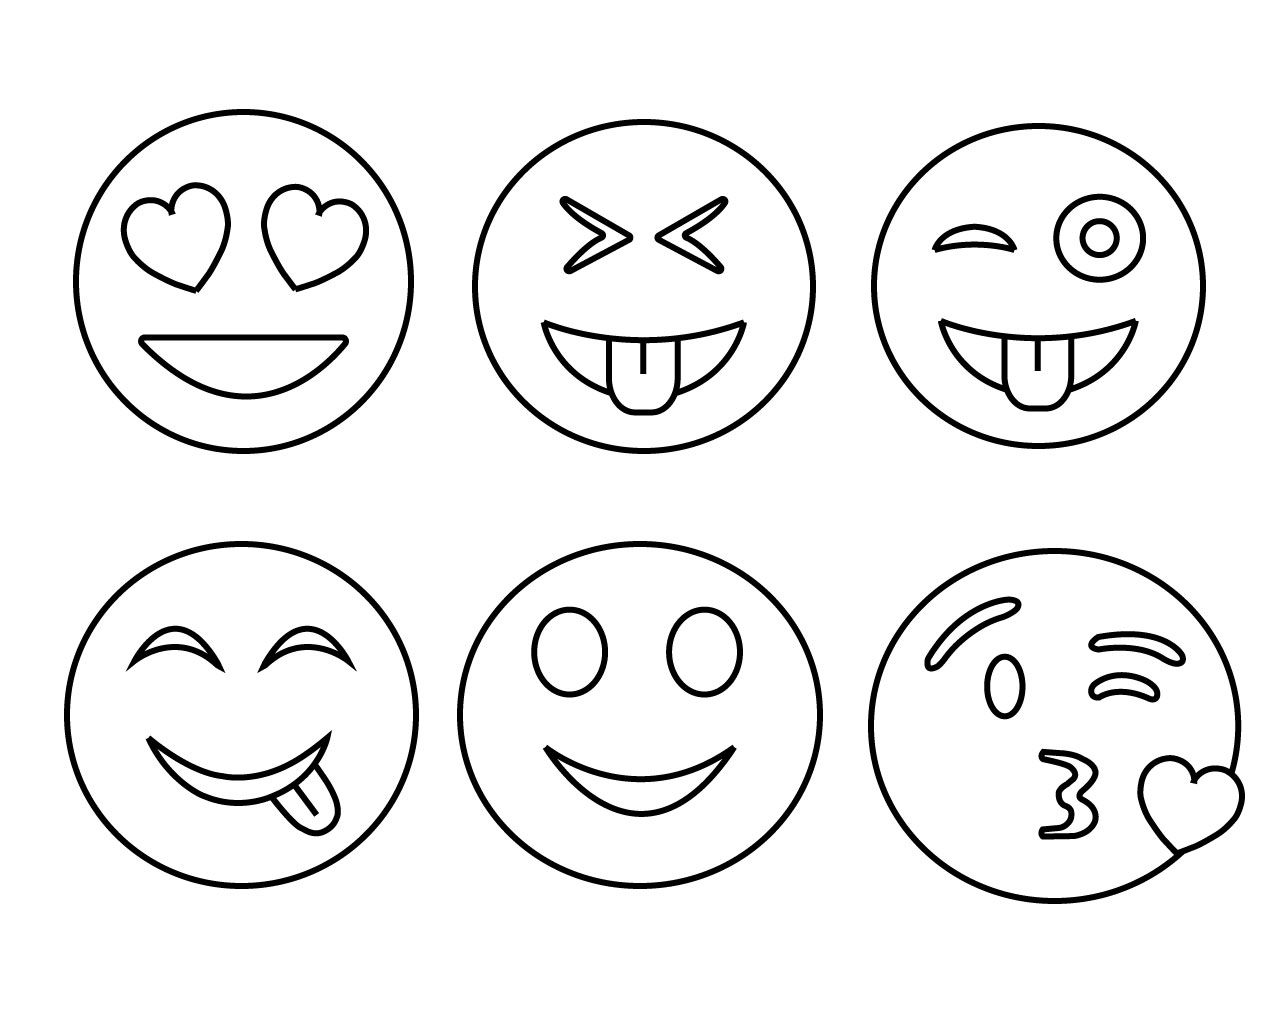 photograph about Free Printable Emoji Coloring Pages named Free of charge Printable Center and Eye, Amazing, Very simple Emoji Coloring